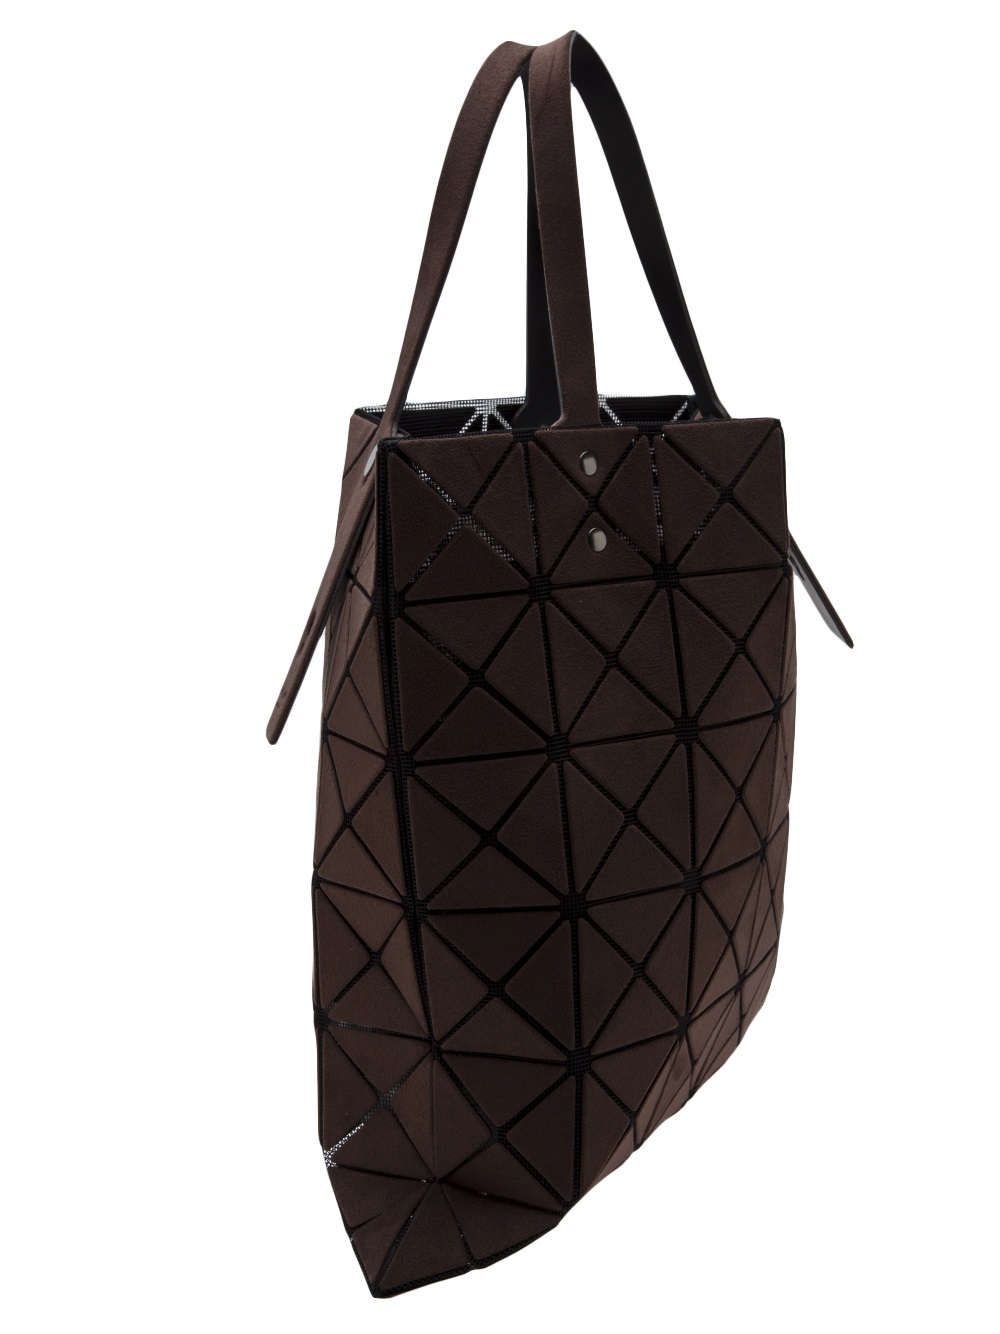 ca66460659 Gallery. Previously sold at  Farfetch · Women s Bao Bao Issey Miyake ...